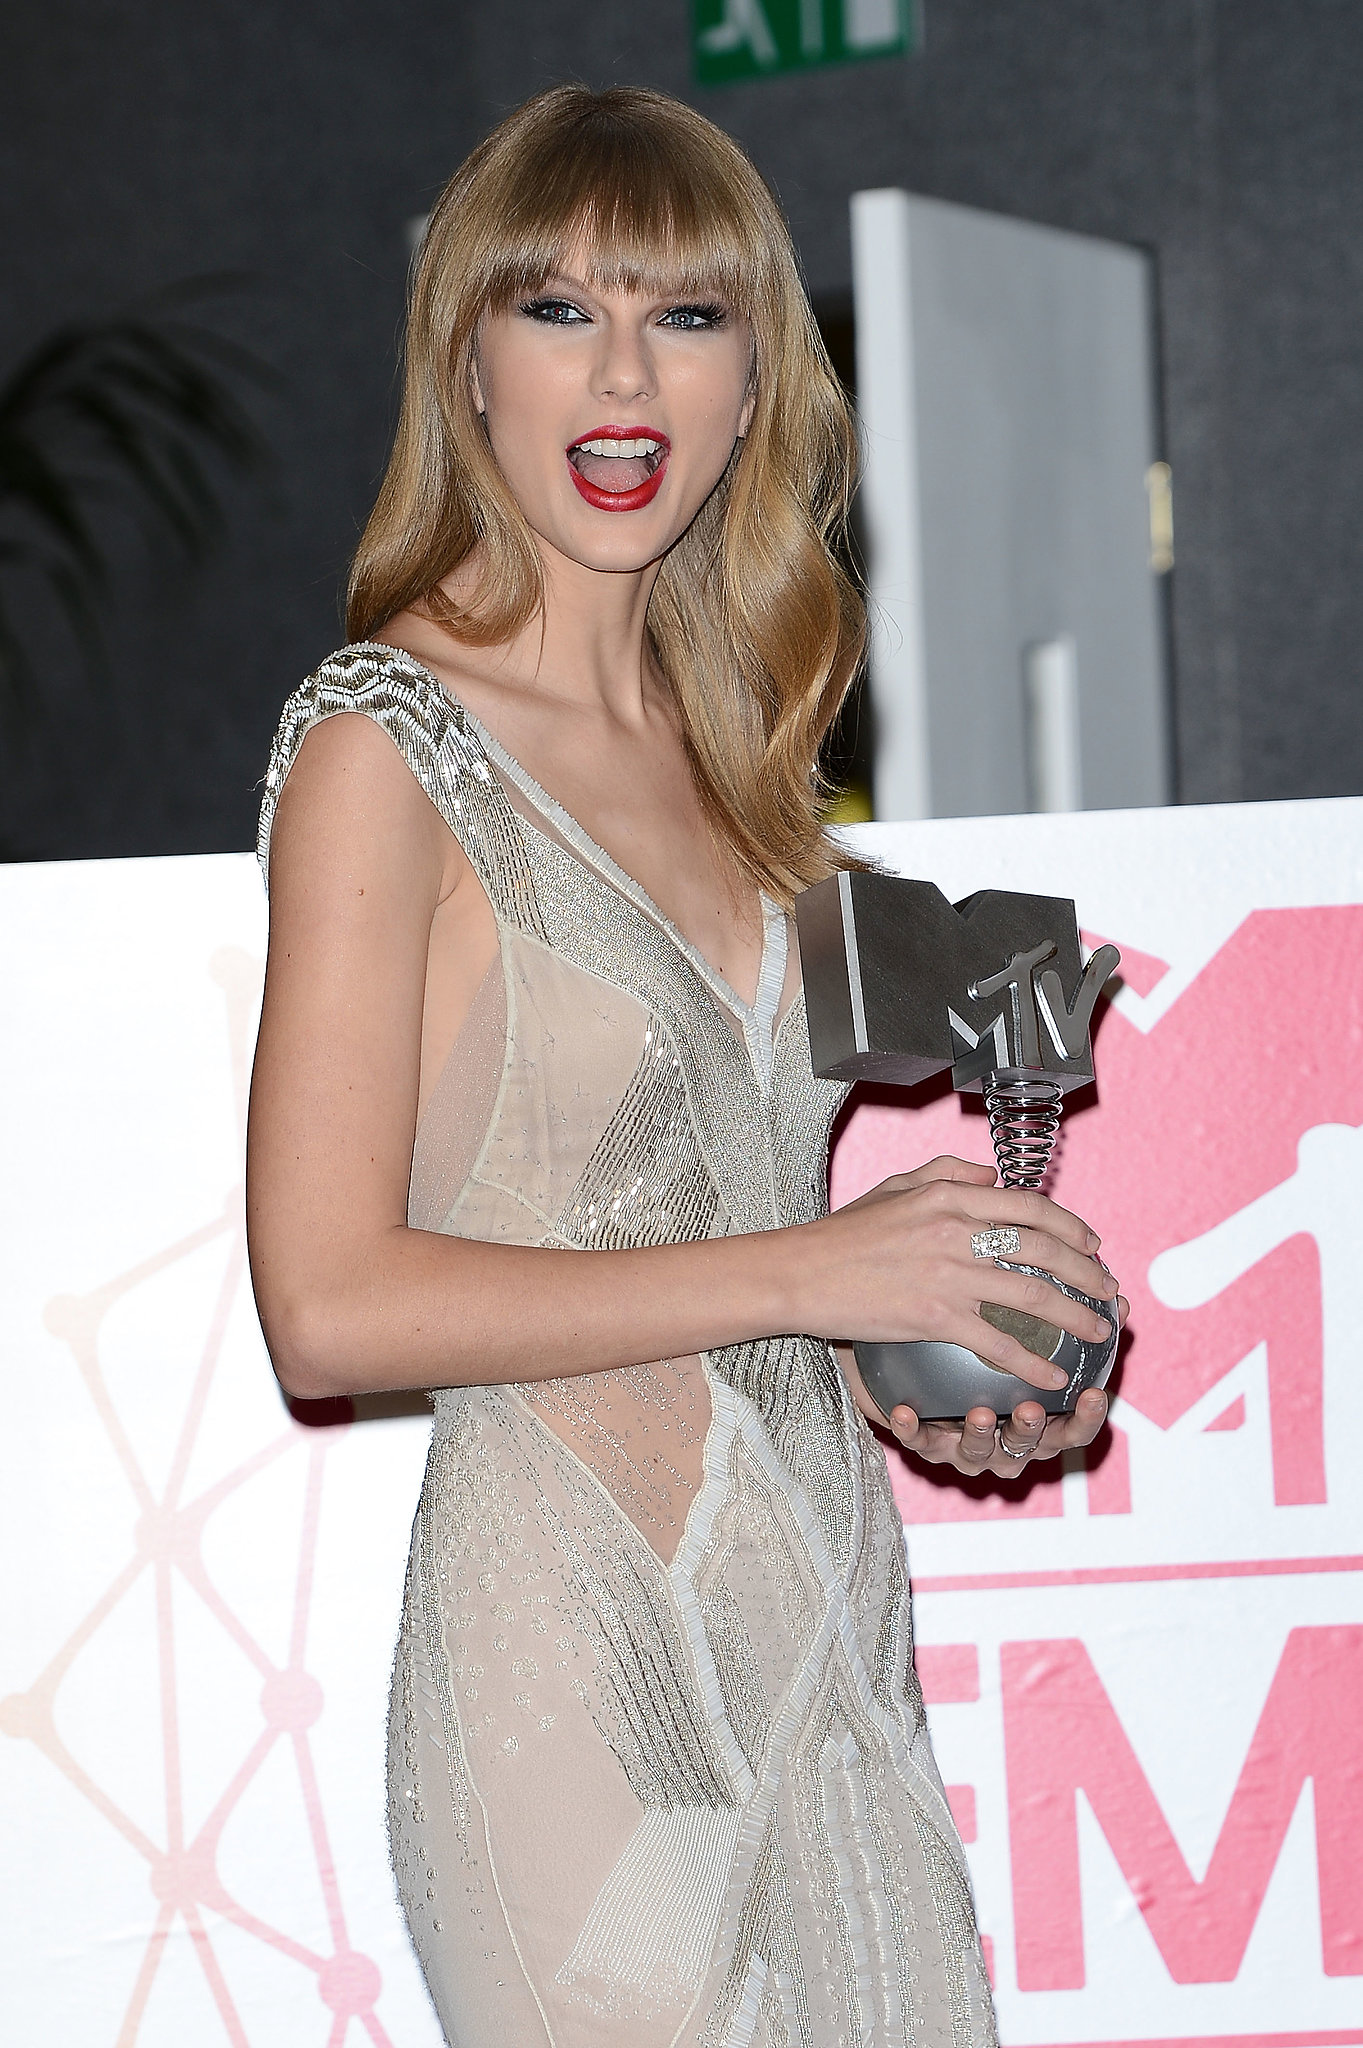 She posed backstage with her MTV EMA trophy in November 2012.